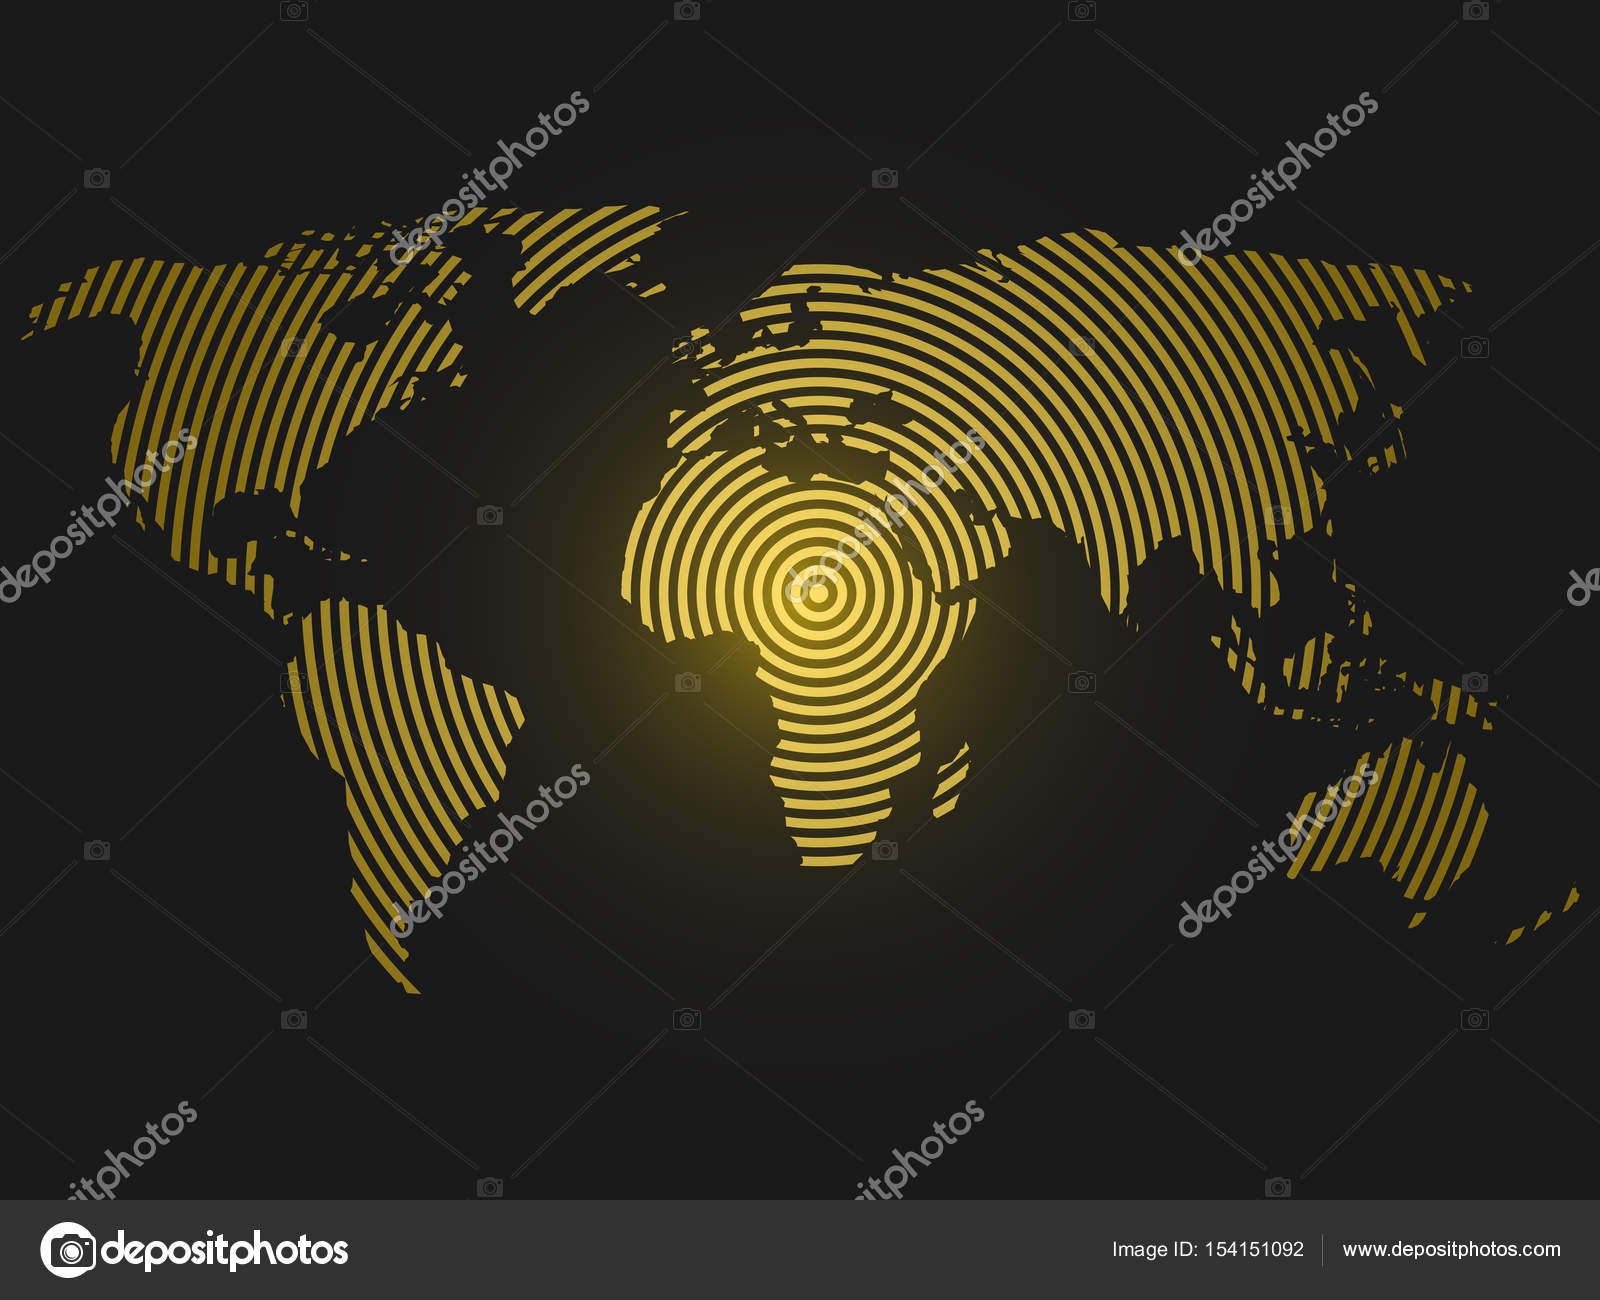 World map of yellow concentric rings on dark grey background world map of yellow concentric rings on dark grey background worldwide communication radio waves concept modern design vector wallpaper vector by pyty gumiabroncs Gallery